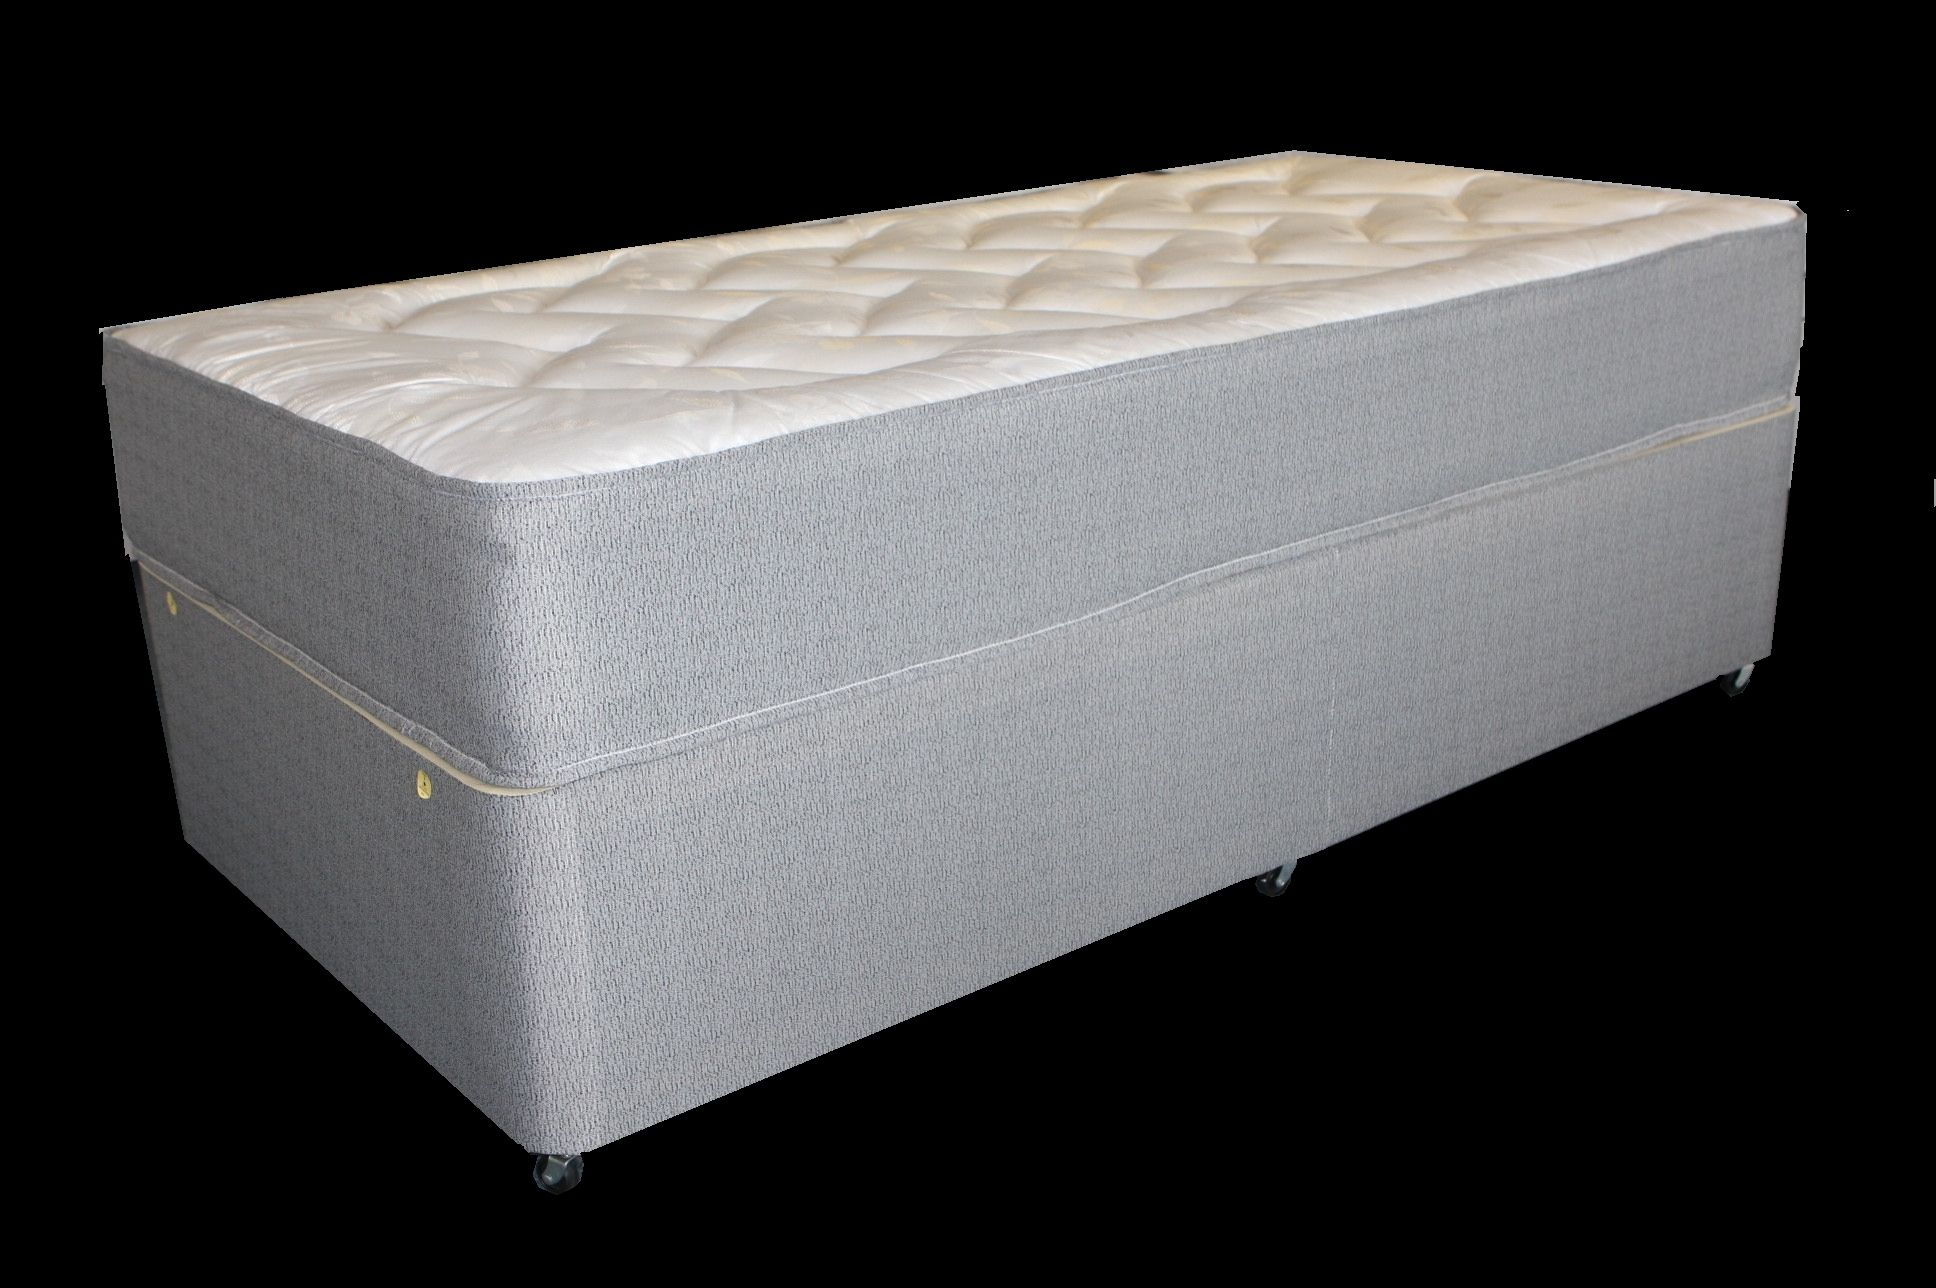 2ft6 super dream ortho divan bed a 249 95 a very deep firmer feel